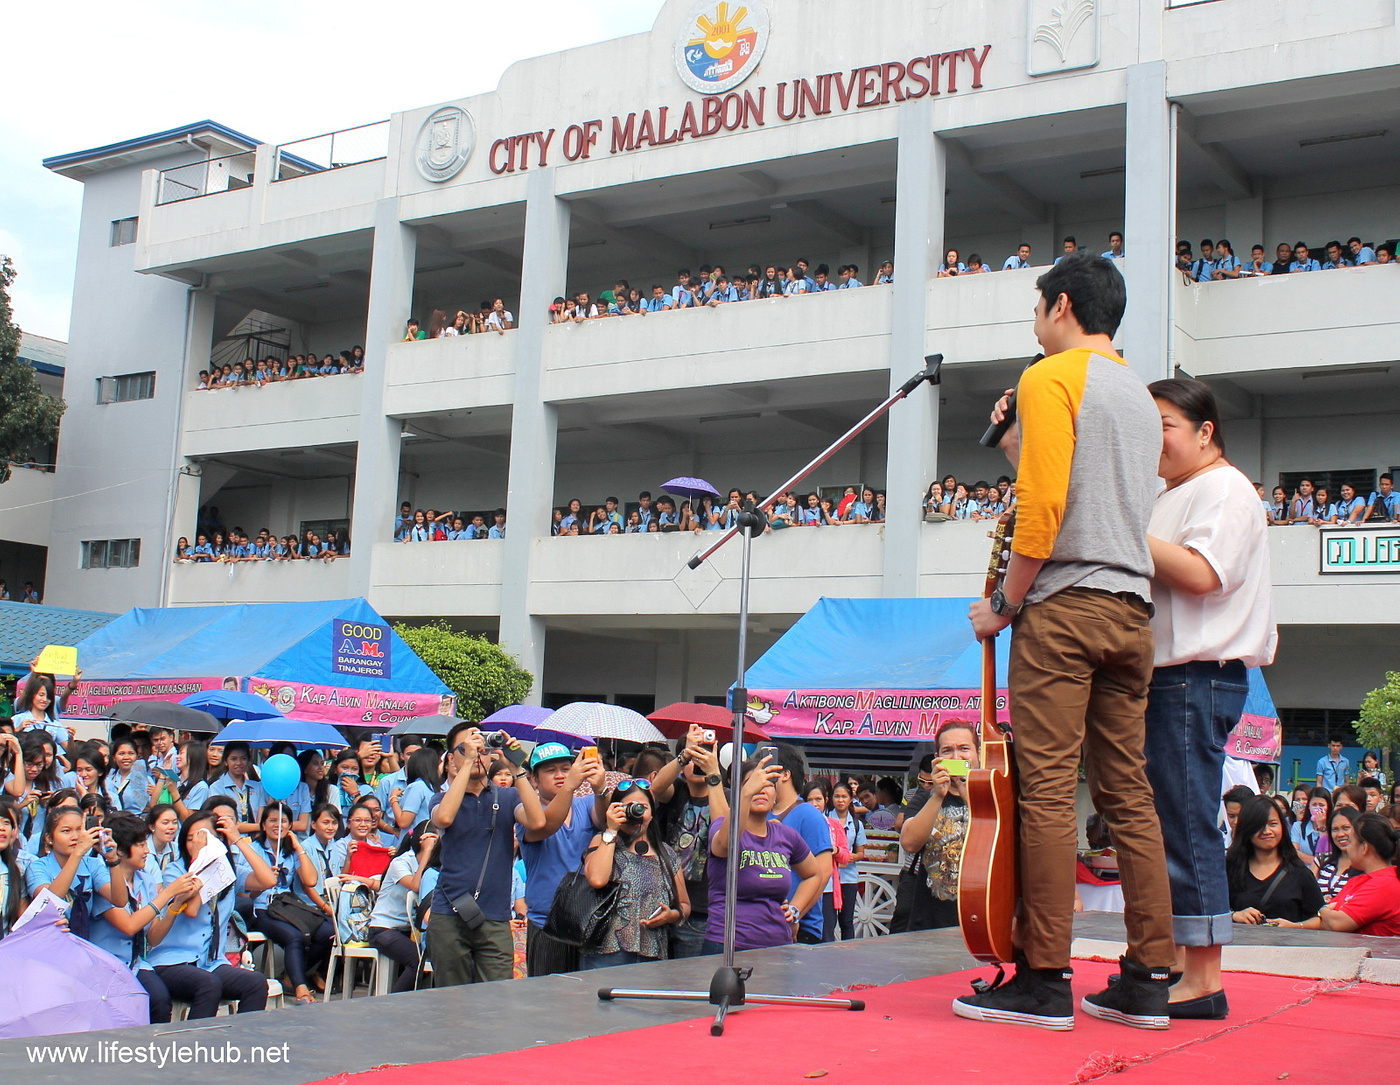 jak roberto city of malabon university